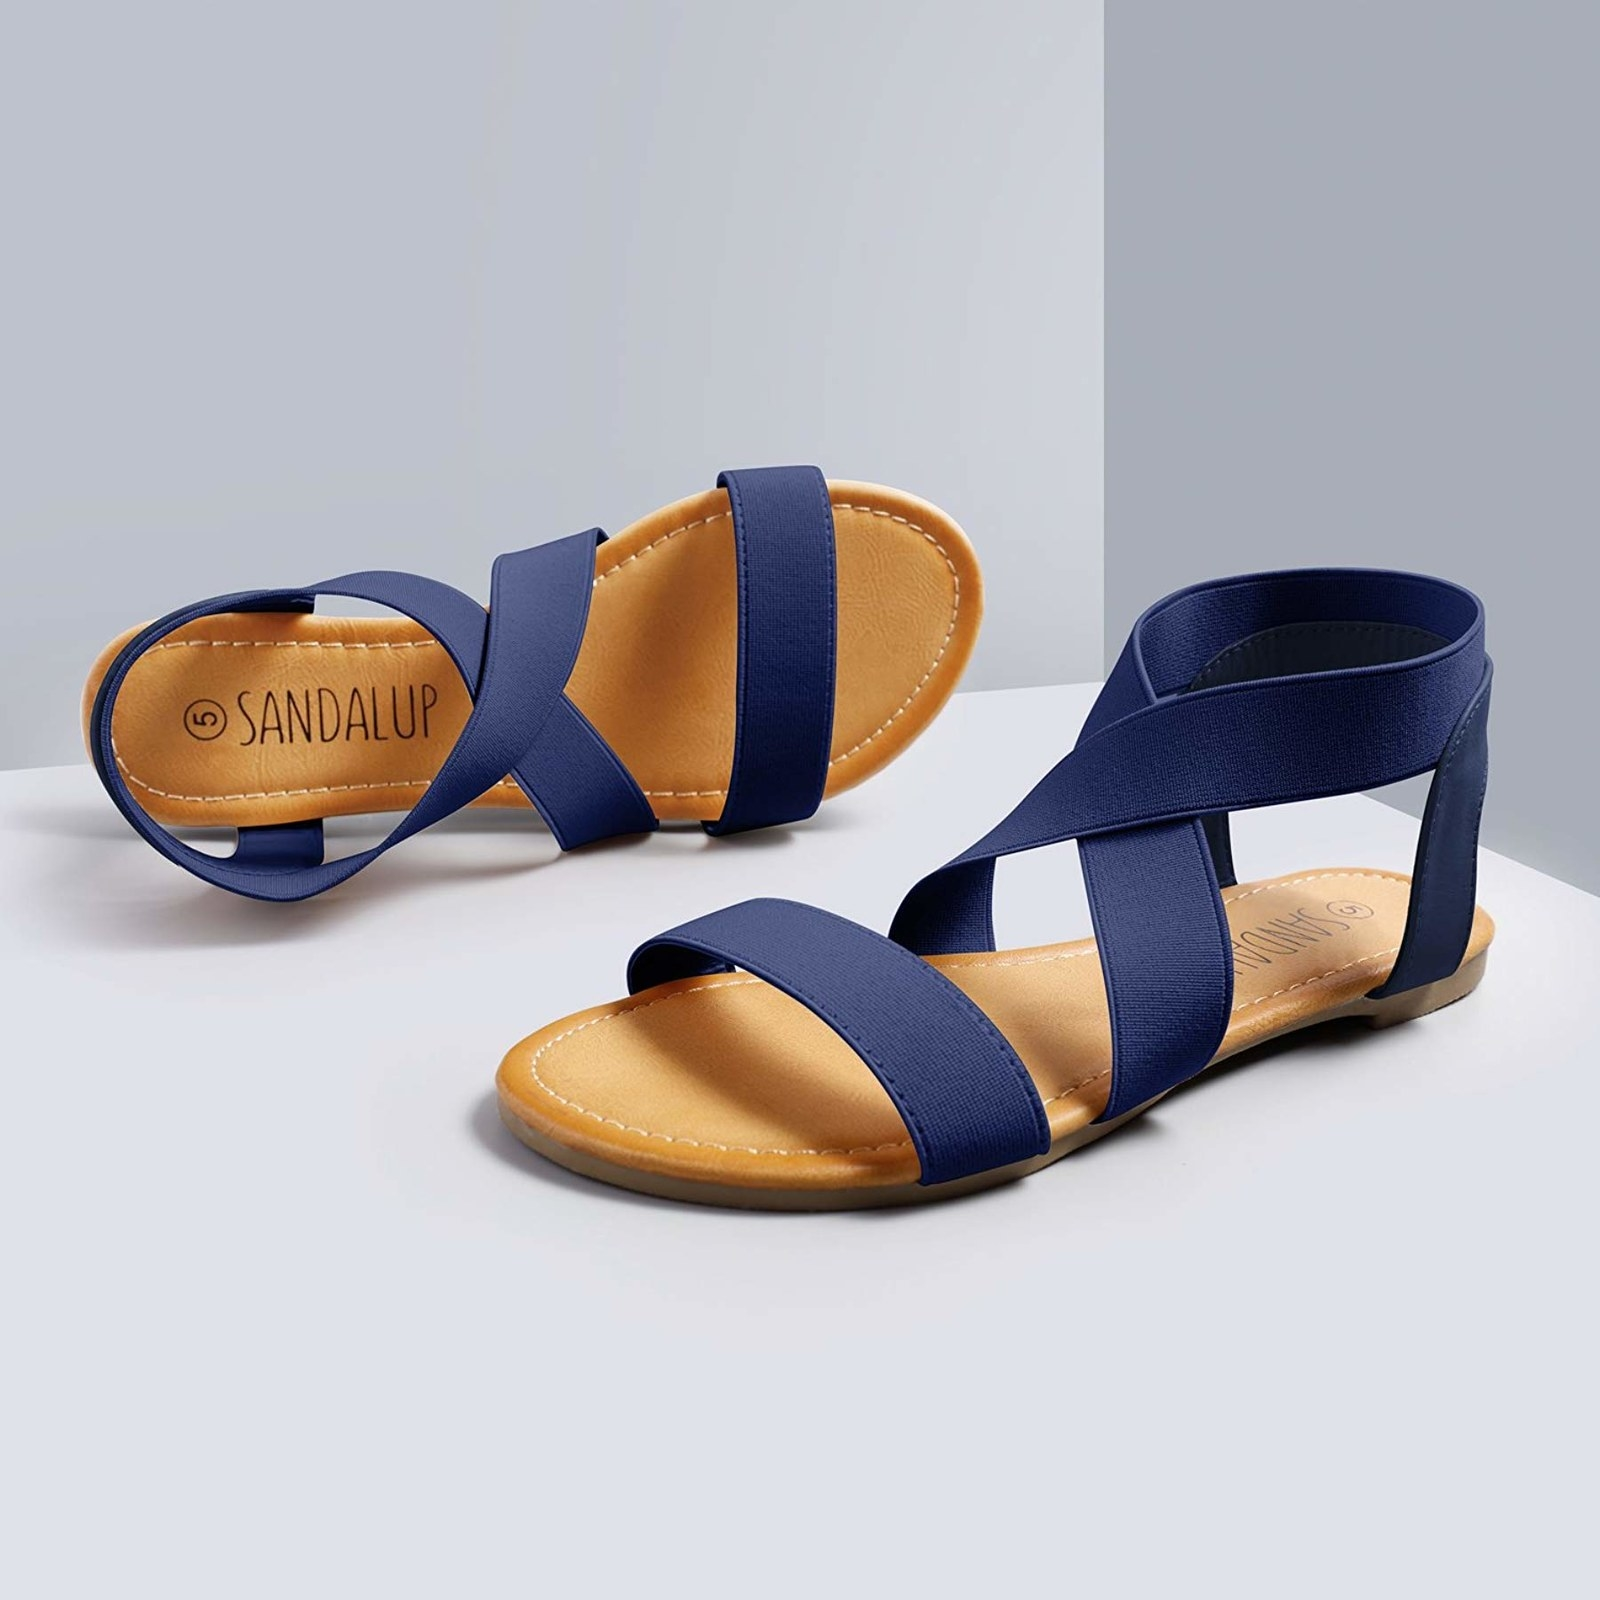 sandals in new navy blue